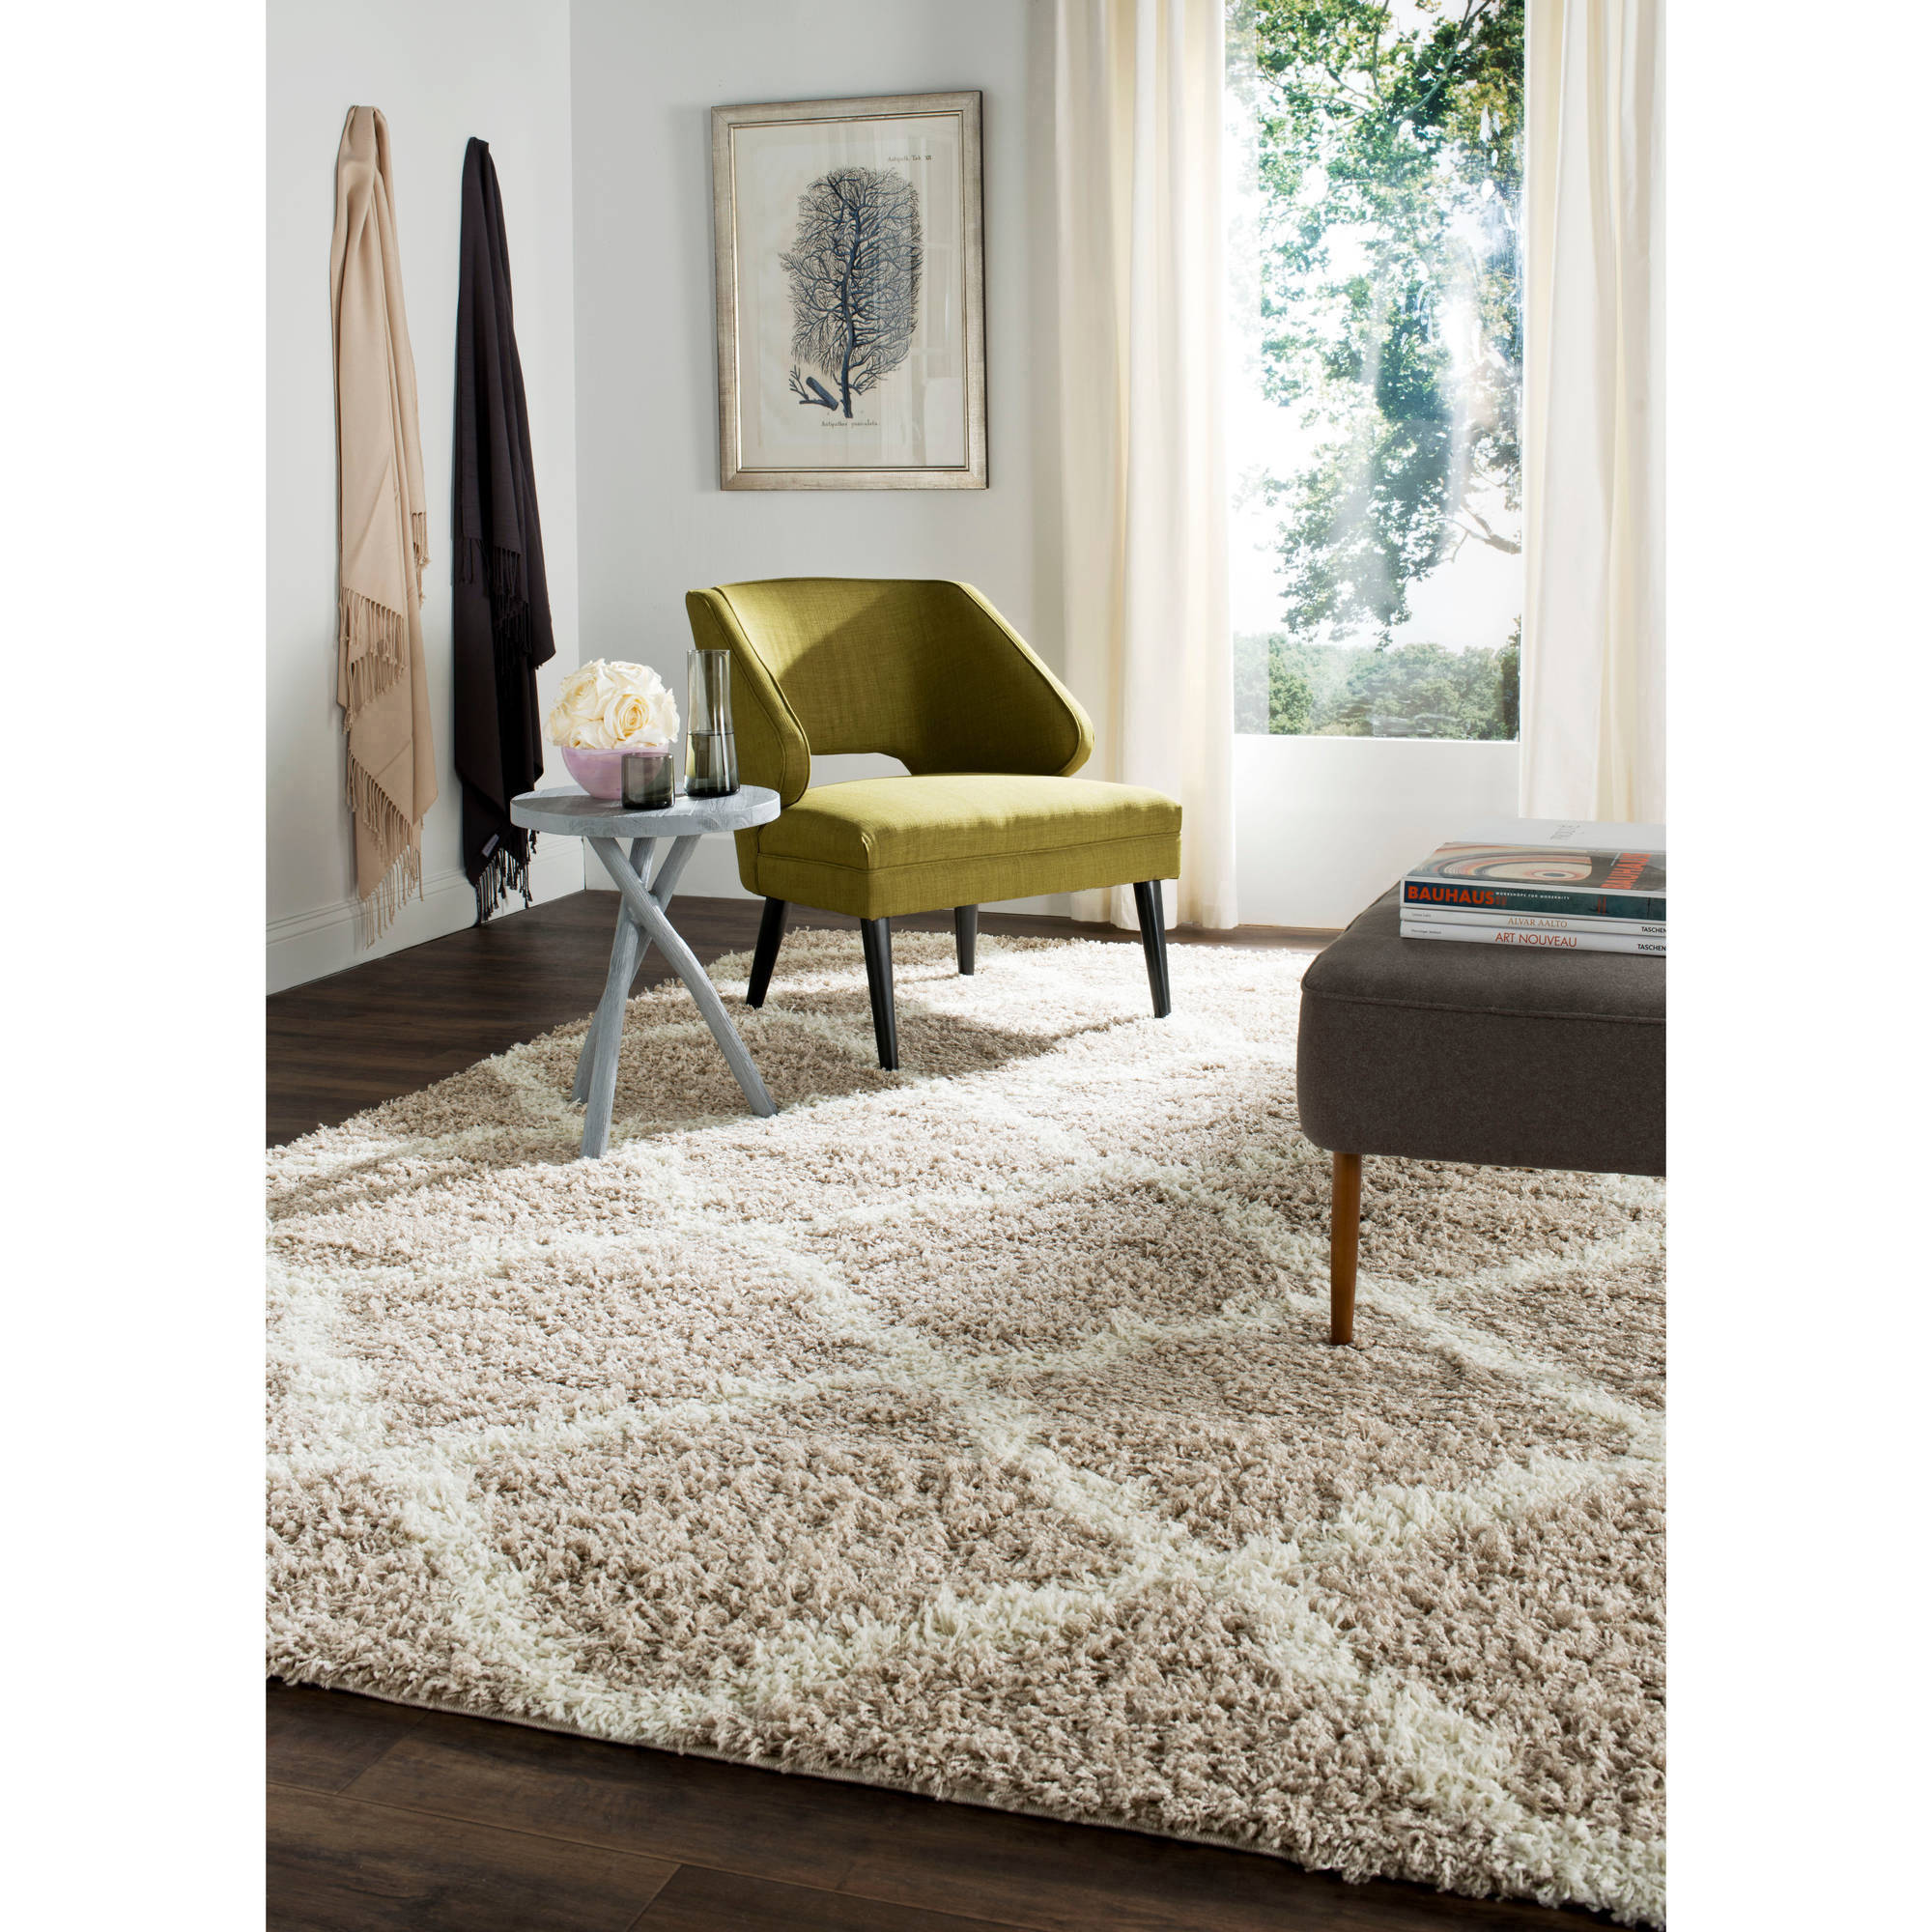 Safavieh Daley Power-Loomed Shag Area Rug or Runner